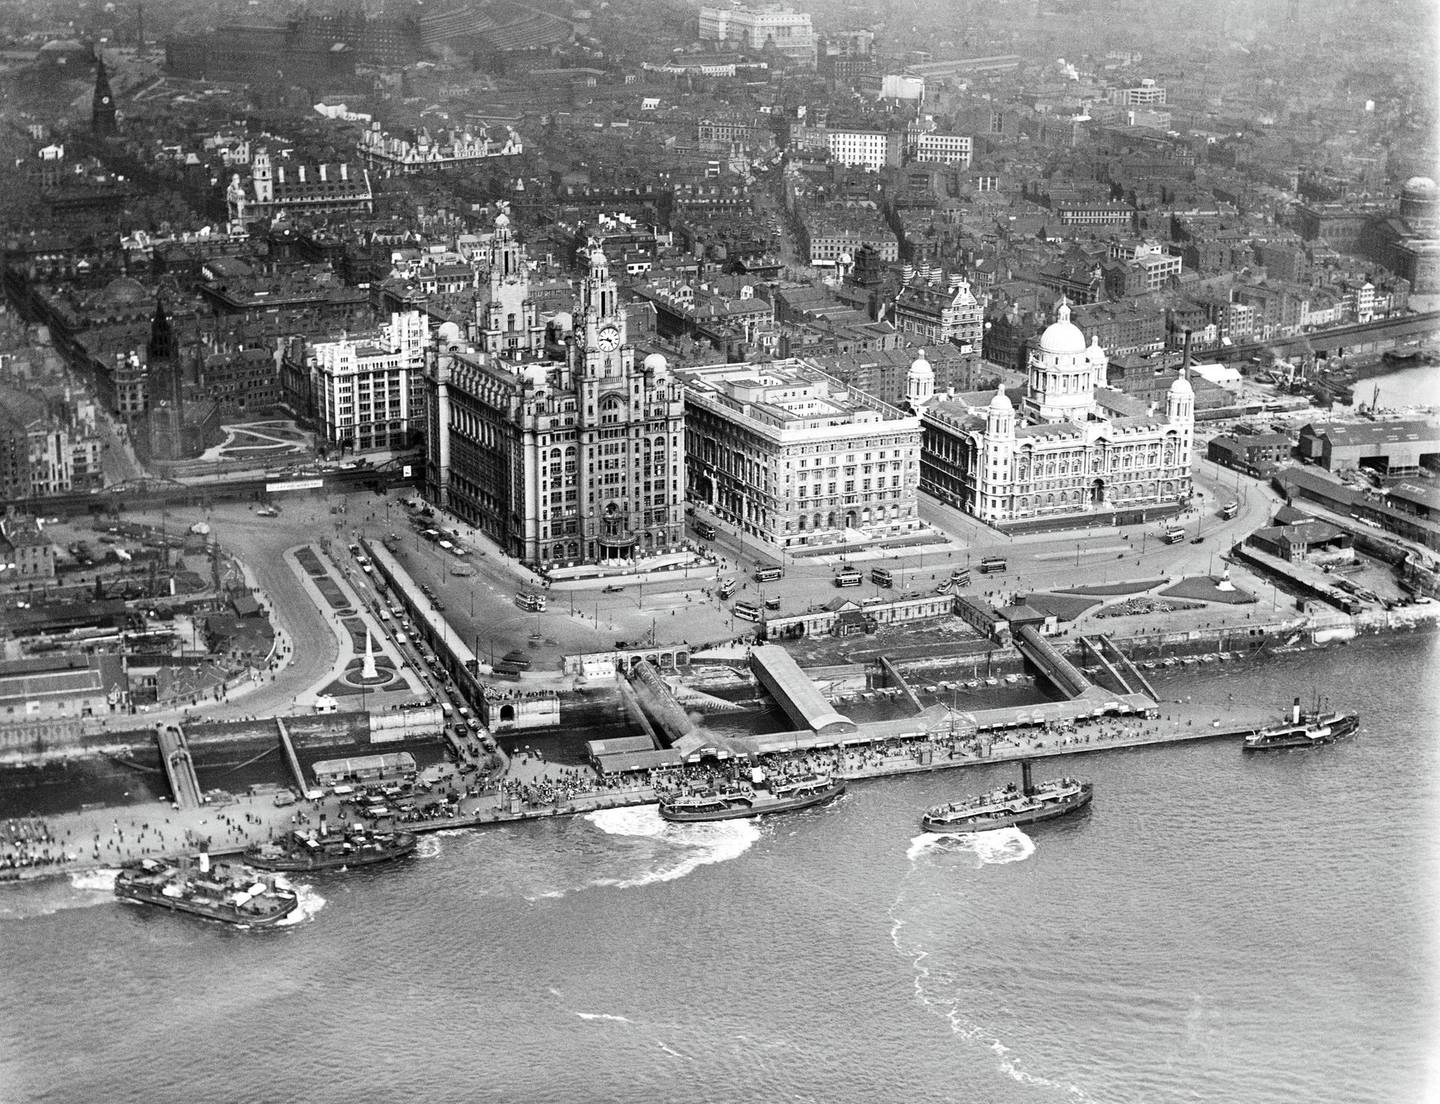 George's Landing Stage and the Three Graces, Liverpool, Merseyside, 1920. A number of vessels plying their trade on the River Mersey. The 'Three Graces' are the Royal Liver Building (completed in 1911 with two clock towers crowned by mythical Liver Birds), the Cunard Building (completed in 1916) and the Port of Liverpool Building (completed in 1907). The landing stage at Pier Head served the transatlantic liner service. Artist Aerofilms. (Photo by English Heritage/Heritage Images/Getty Images)